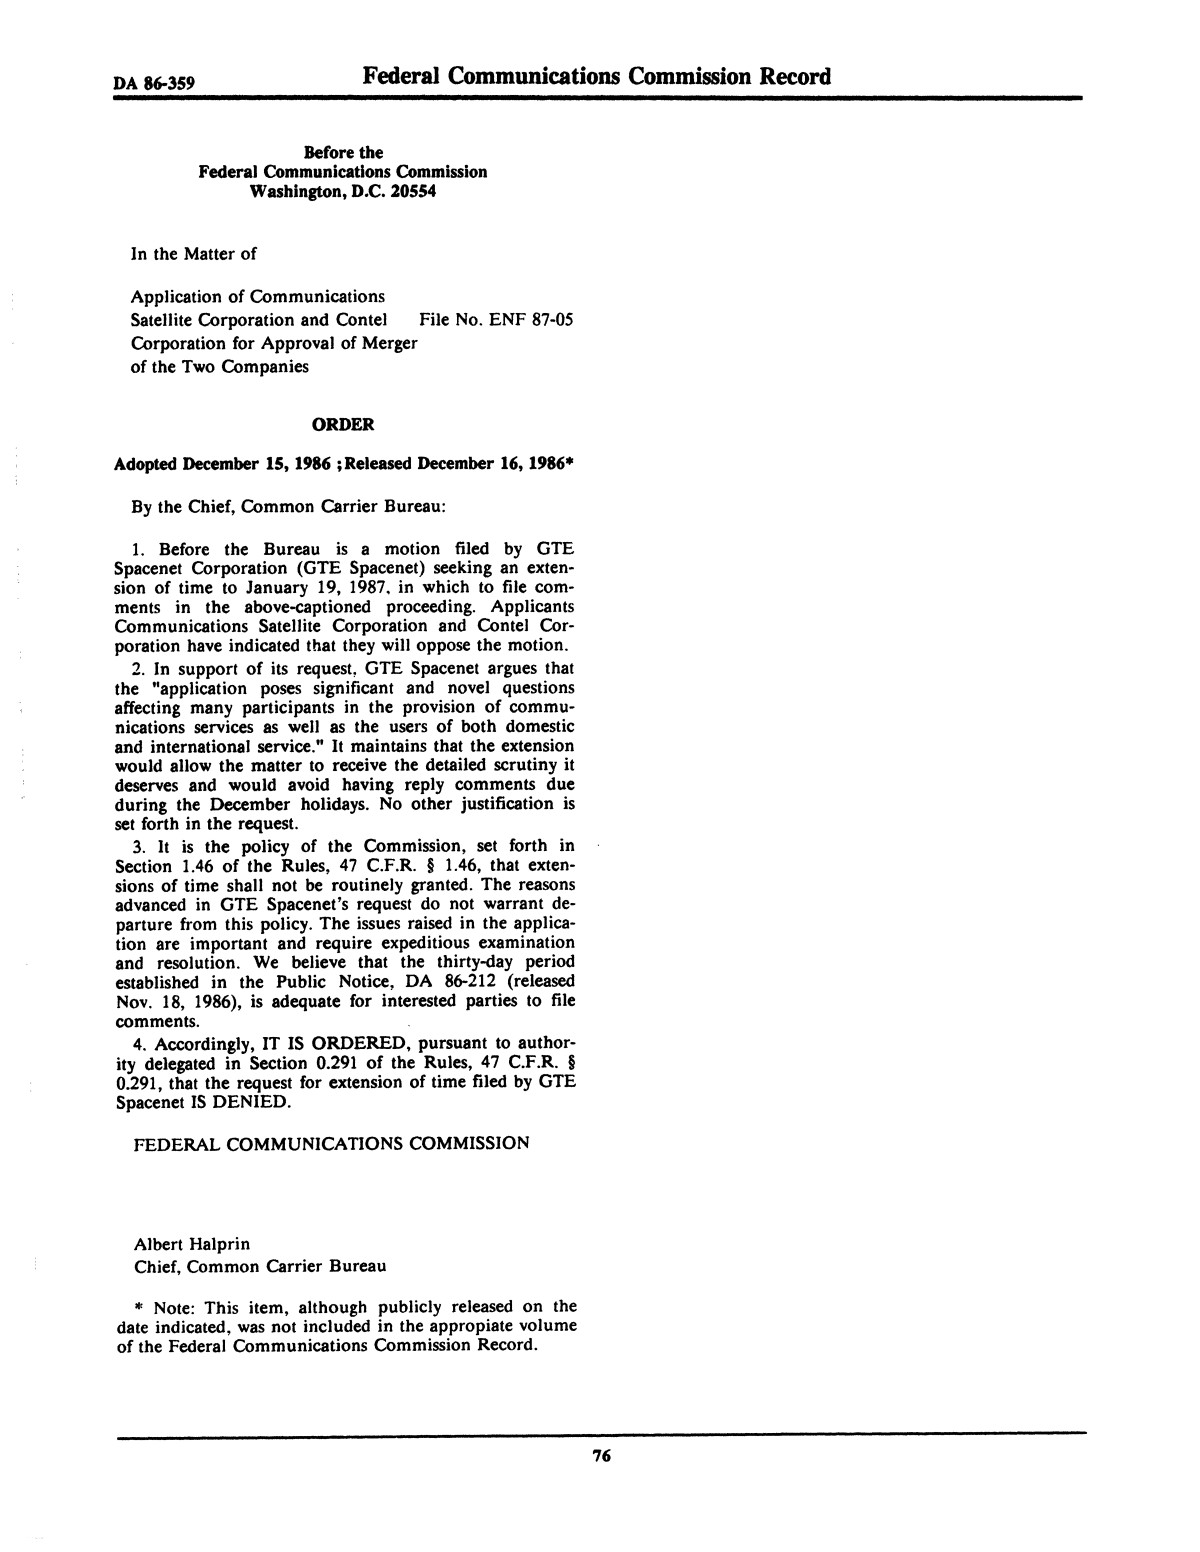 FCC Record, Volume 2, No. 1, Pages 1 to 409, January 5 - January 16, 1987                                                                                                      76